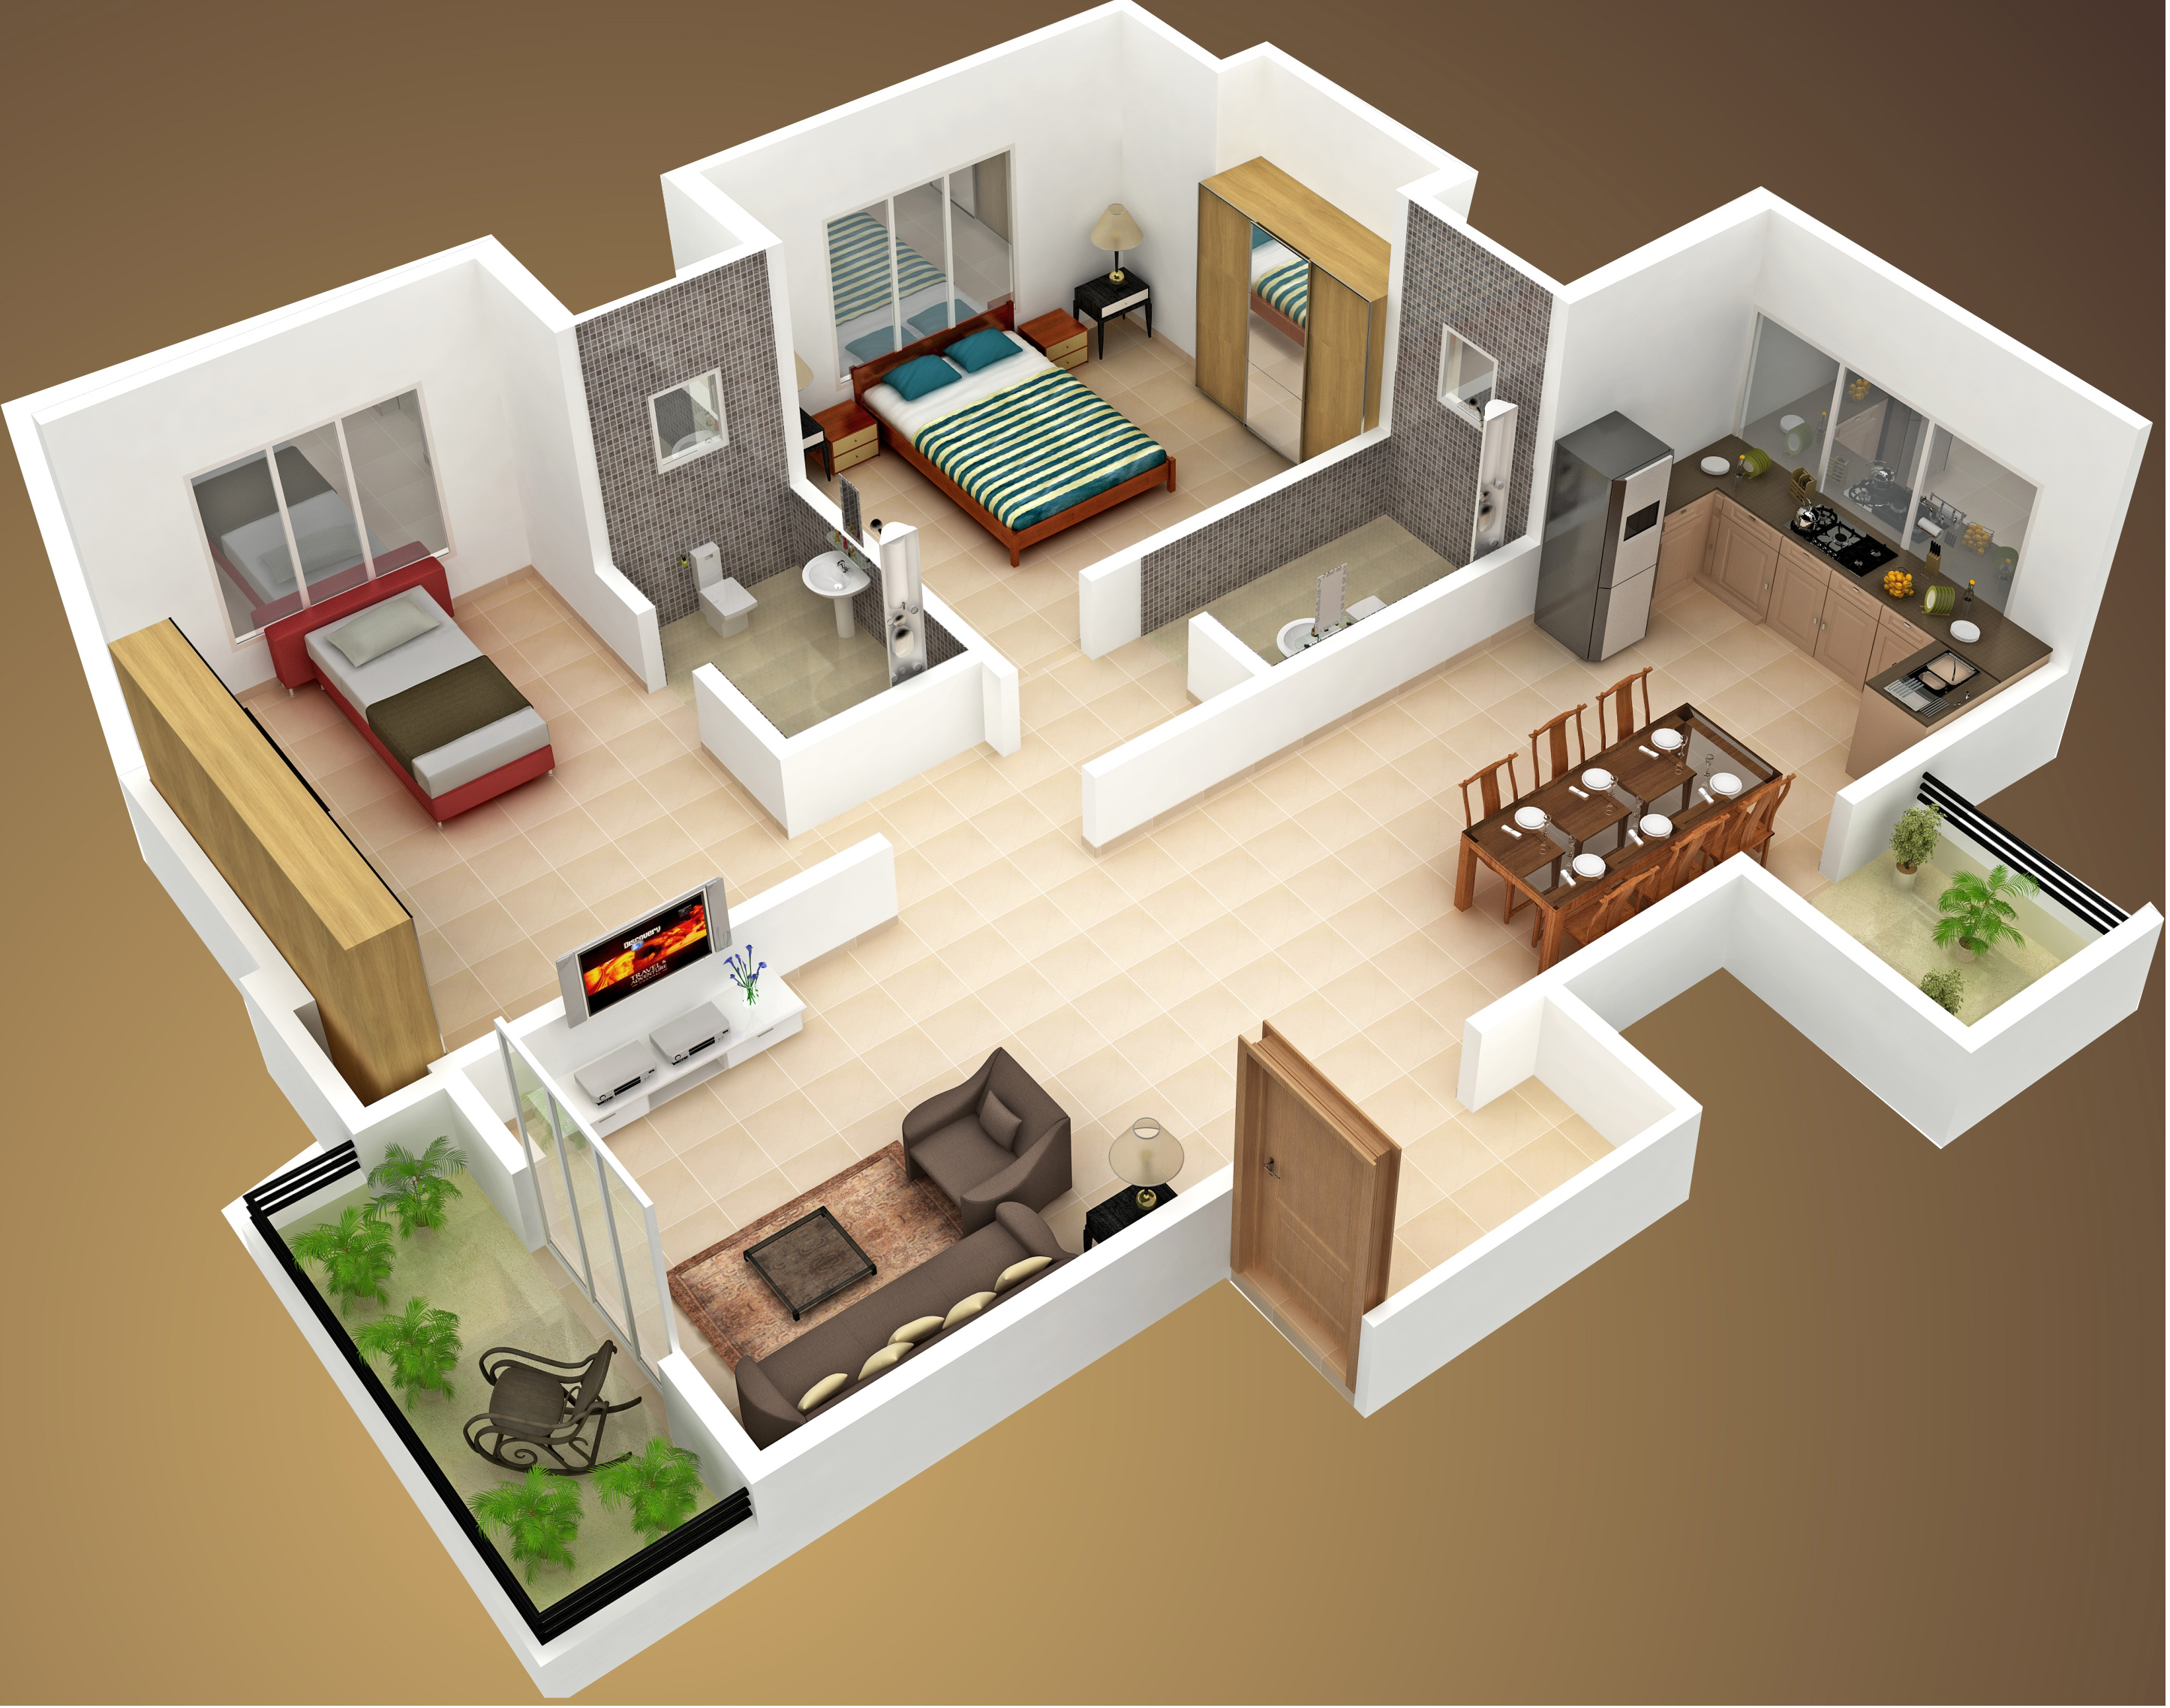 House plan with 3d view 28 images 2 bedroom house for 3d view of house interior design